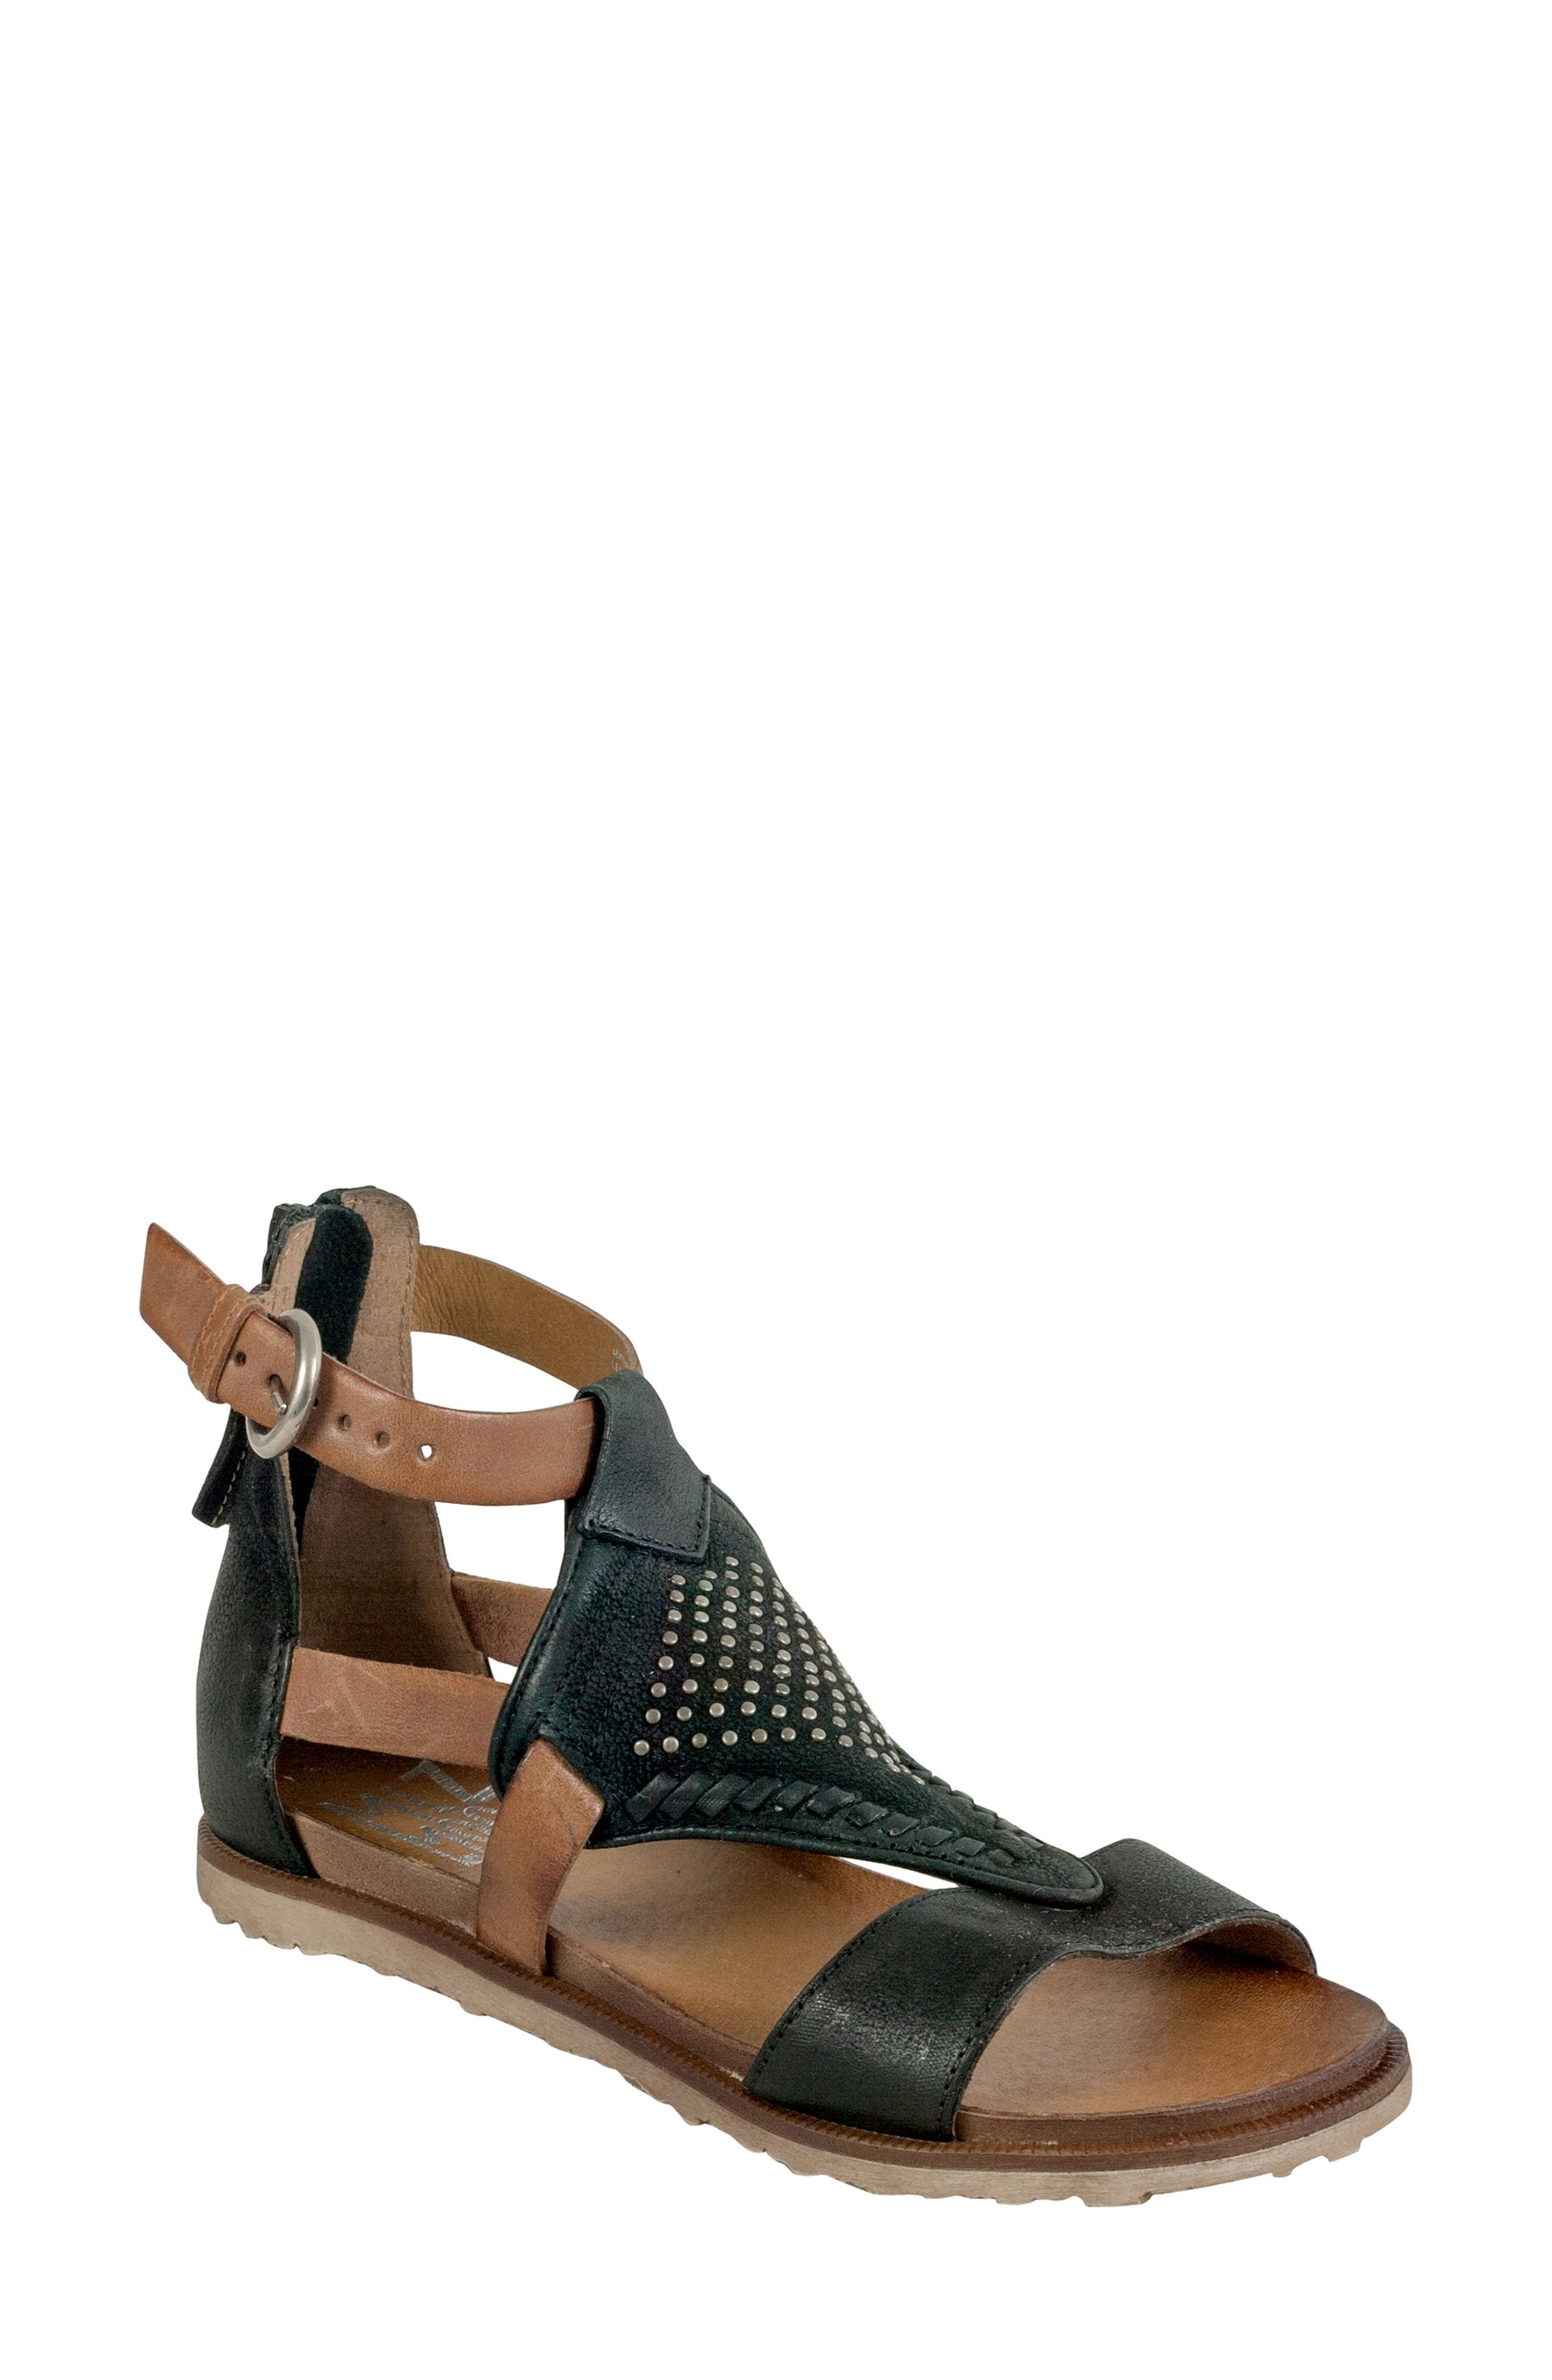 Tessa Studded Diamond Sandal,                         Main,                         color, Black Leather